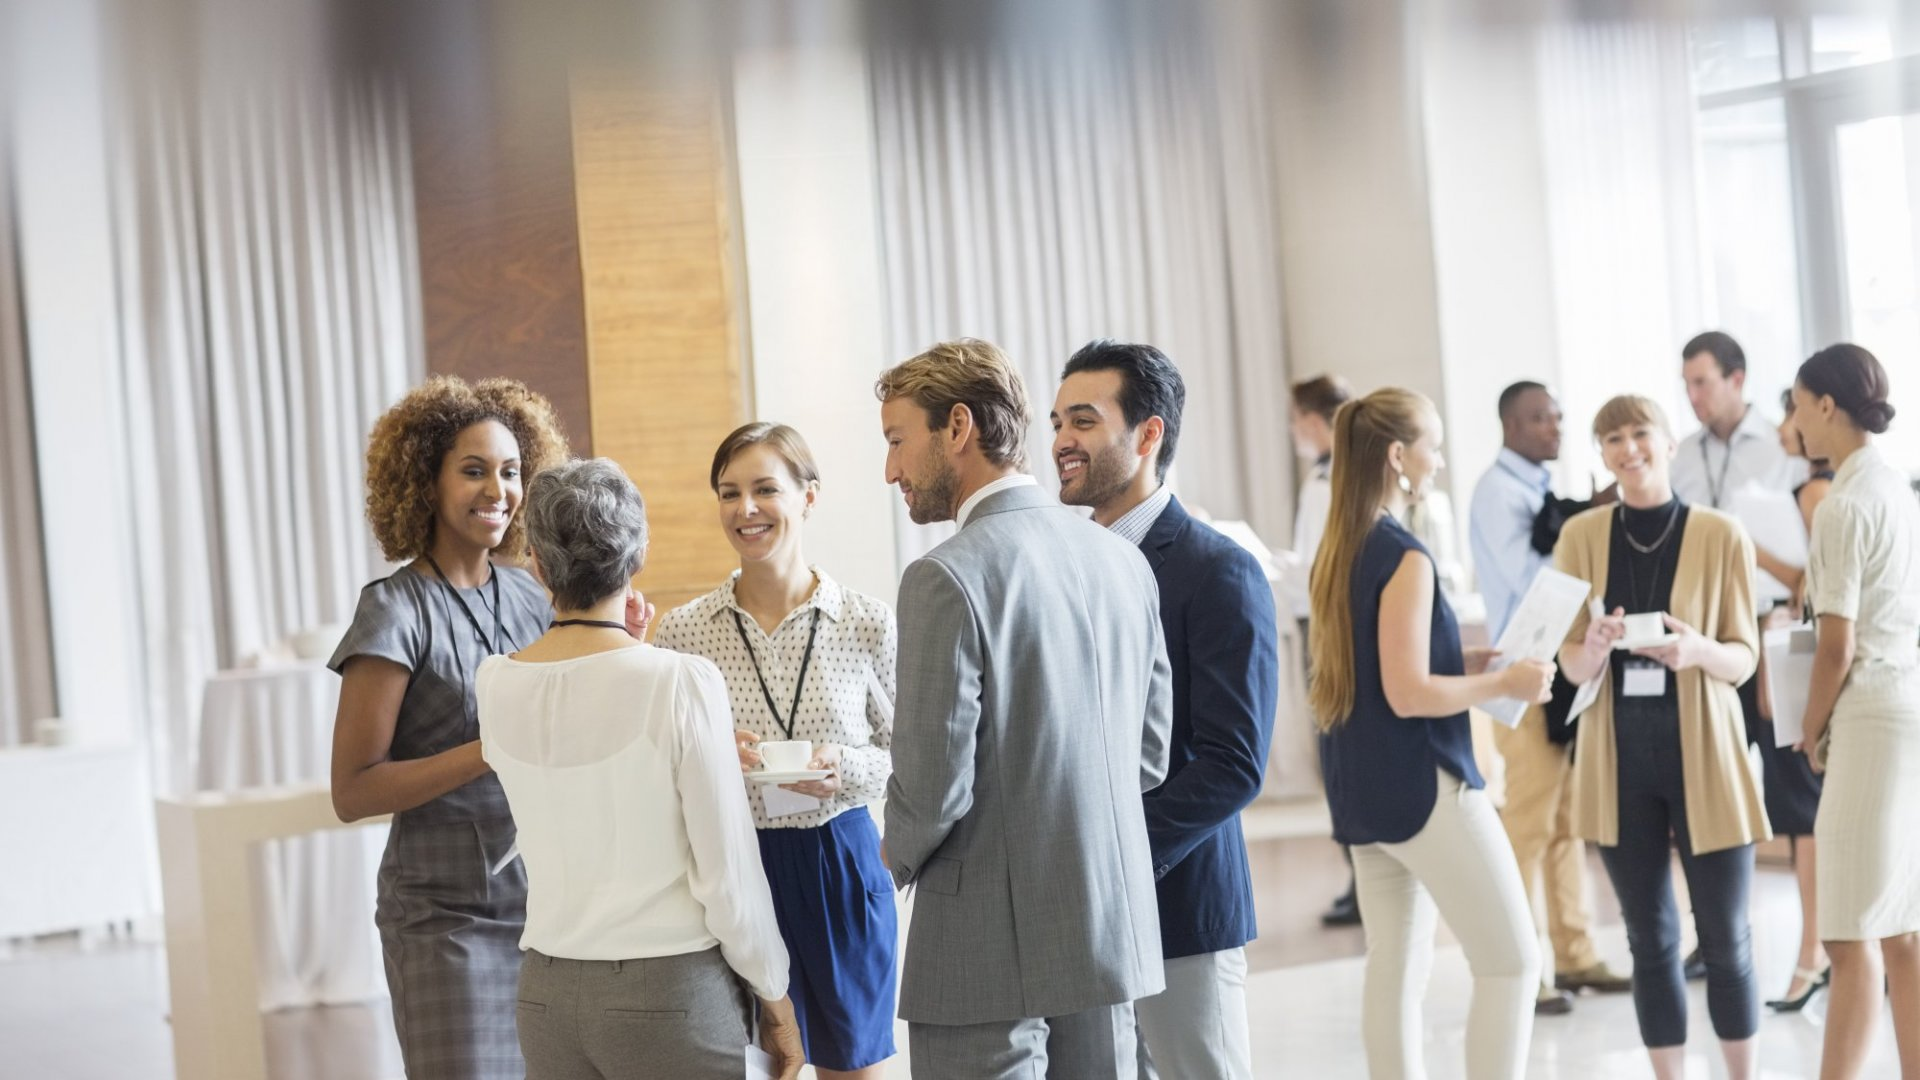 How to Build Rapport With Anyone at Networking Events